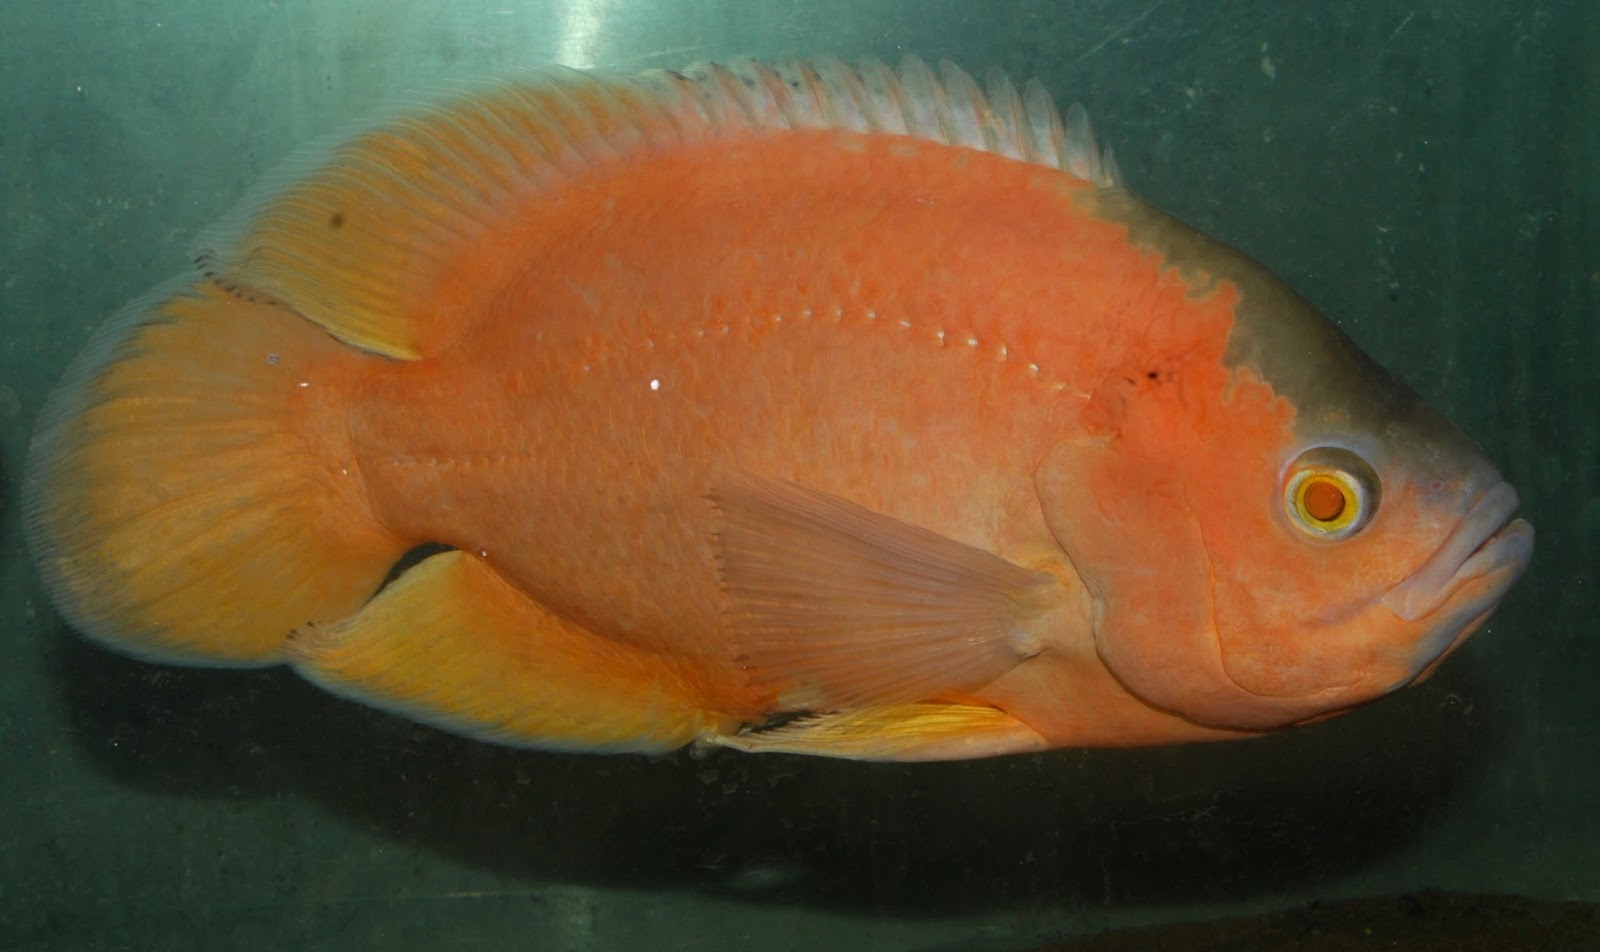 Tropical exotics ornamental fish traders july 2013 for Ornamental fish